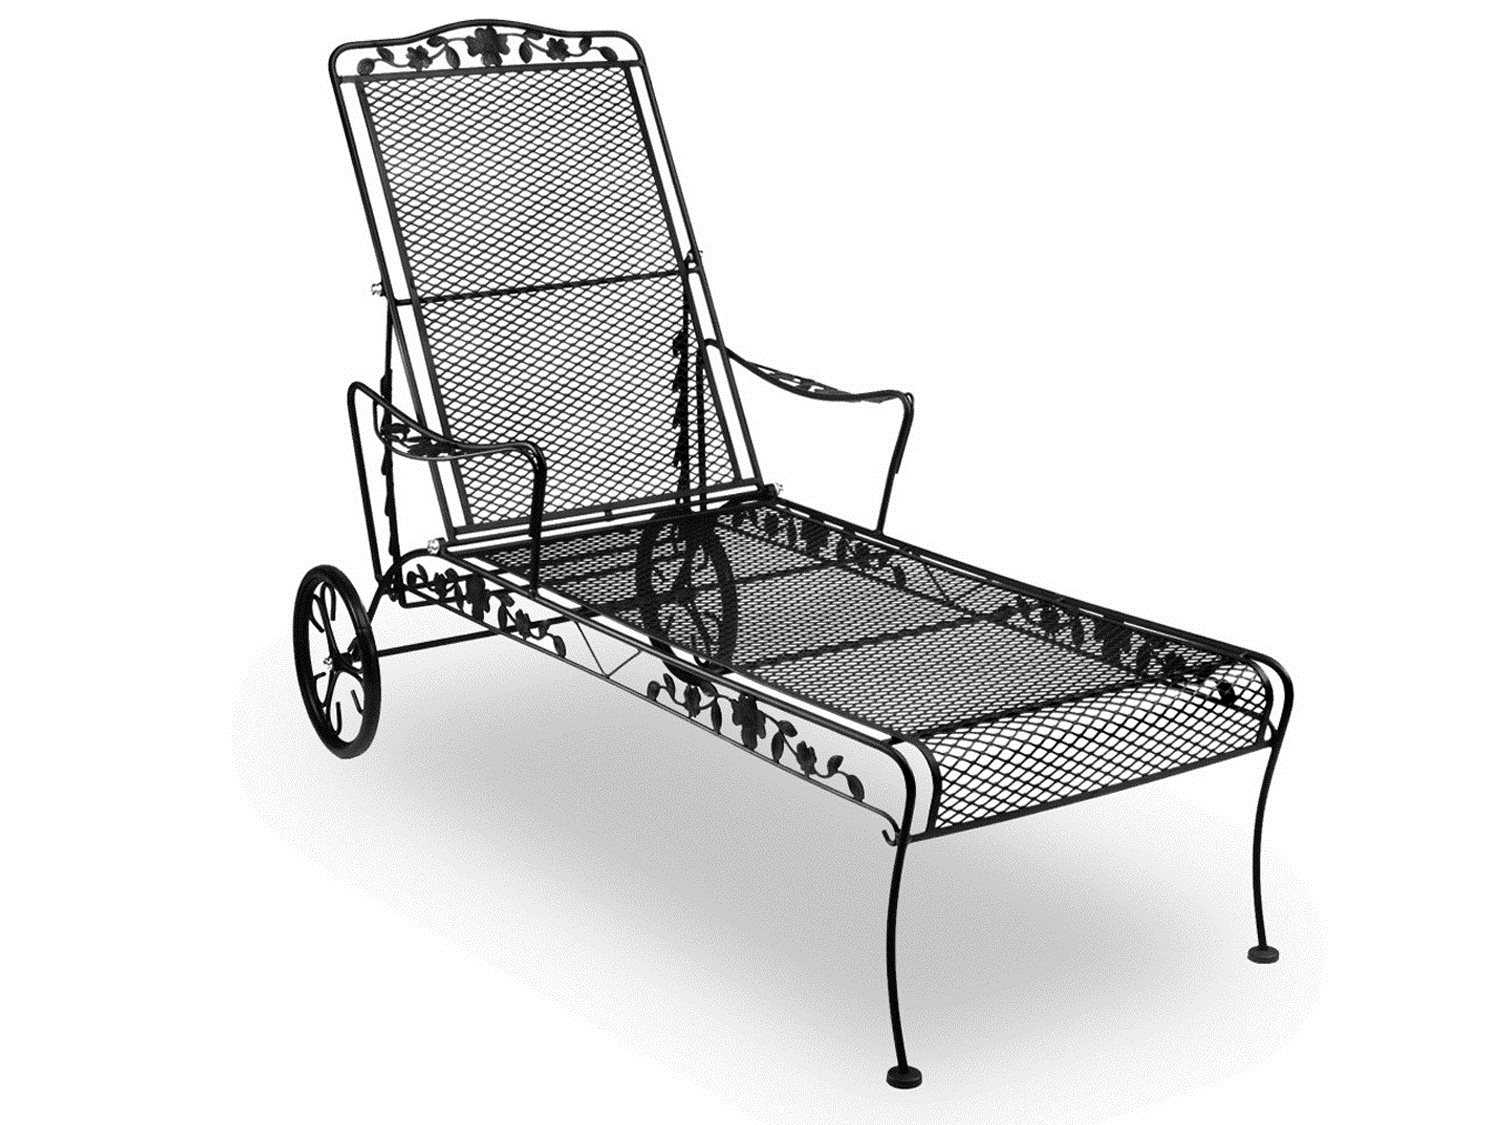 Meadowcraft Dogwood Wrought Iron Chaise Lounge 7615400 01